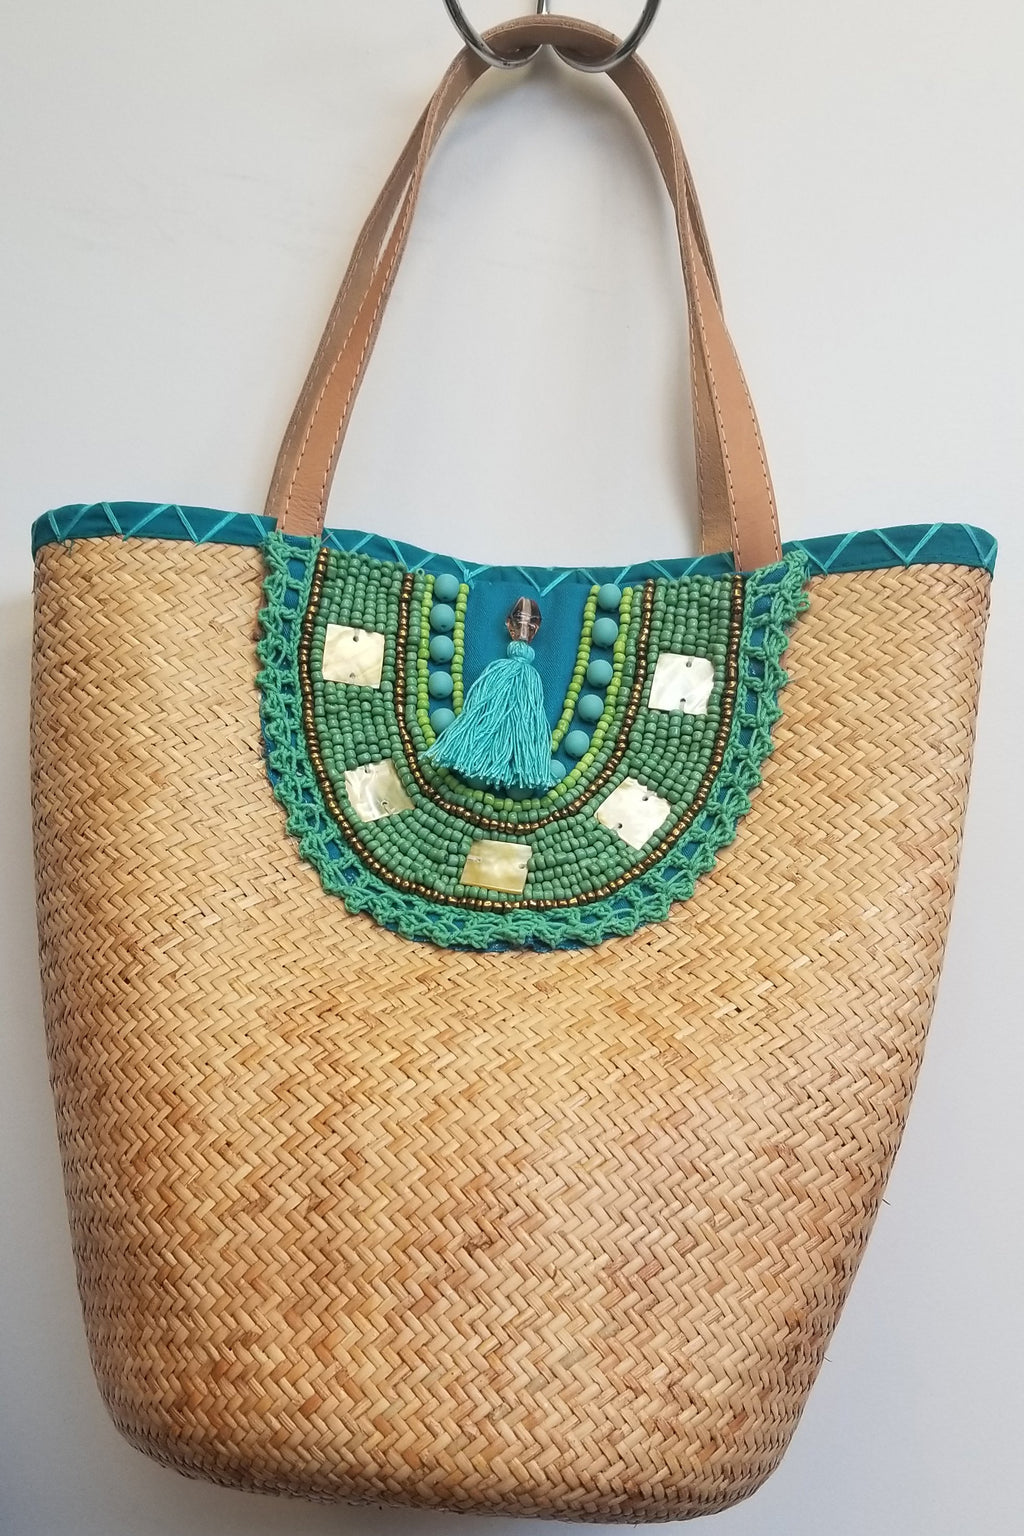 Teal Rattan Hand Beaded Bag - Blue Sky Clothing Co